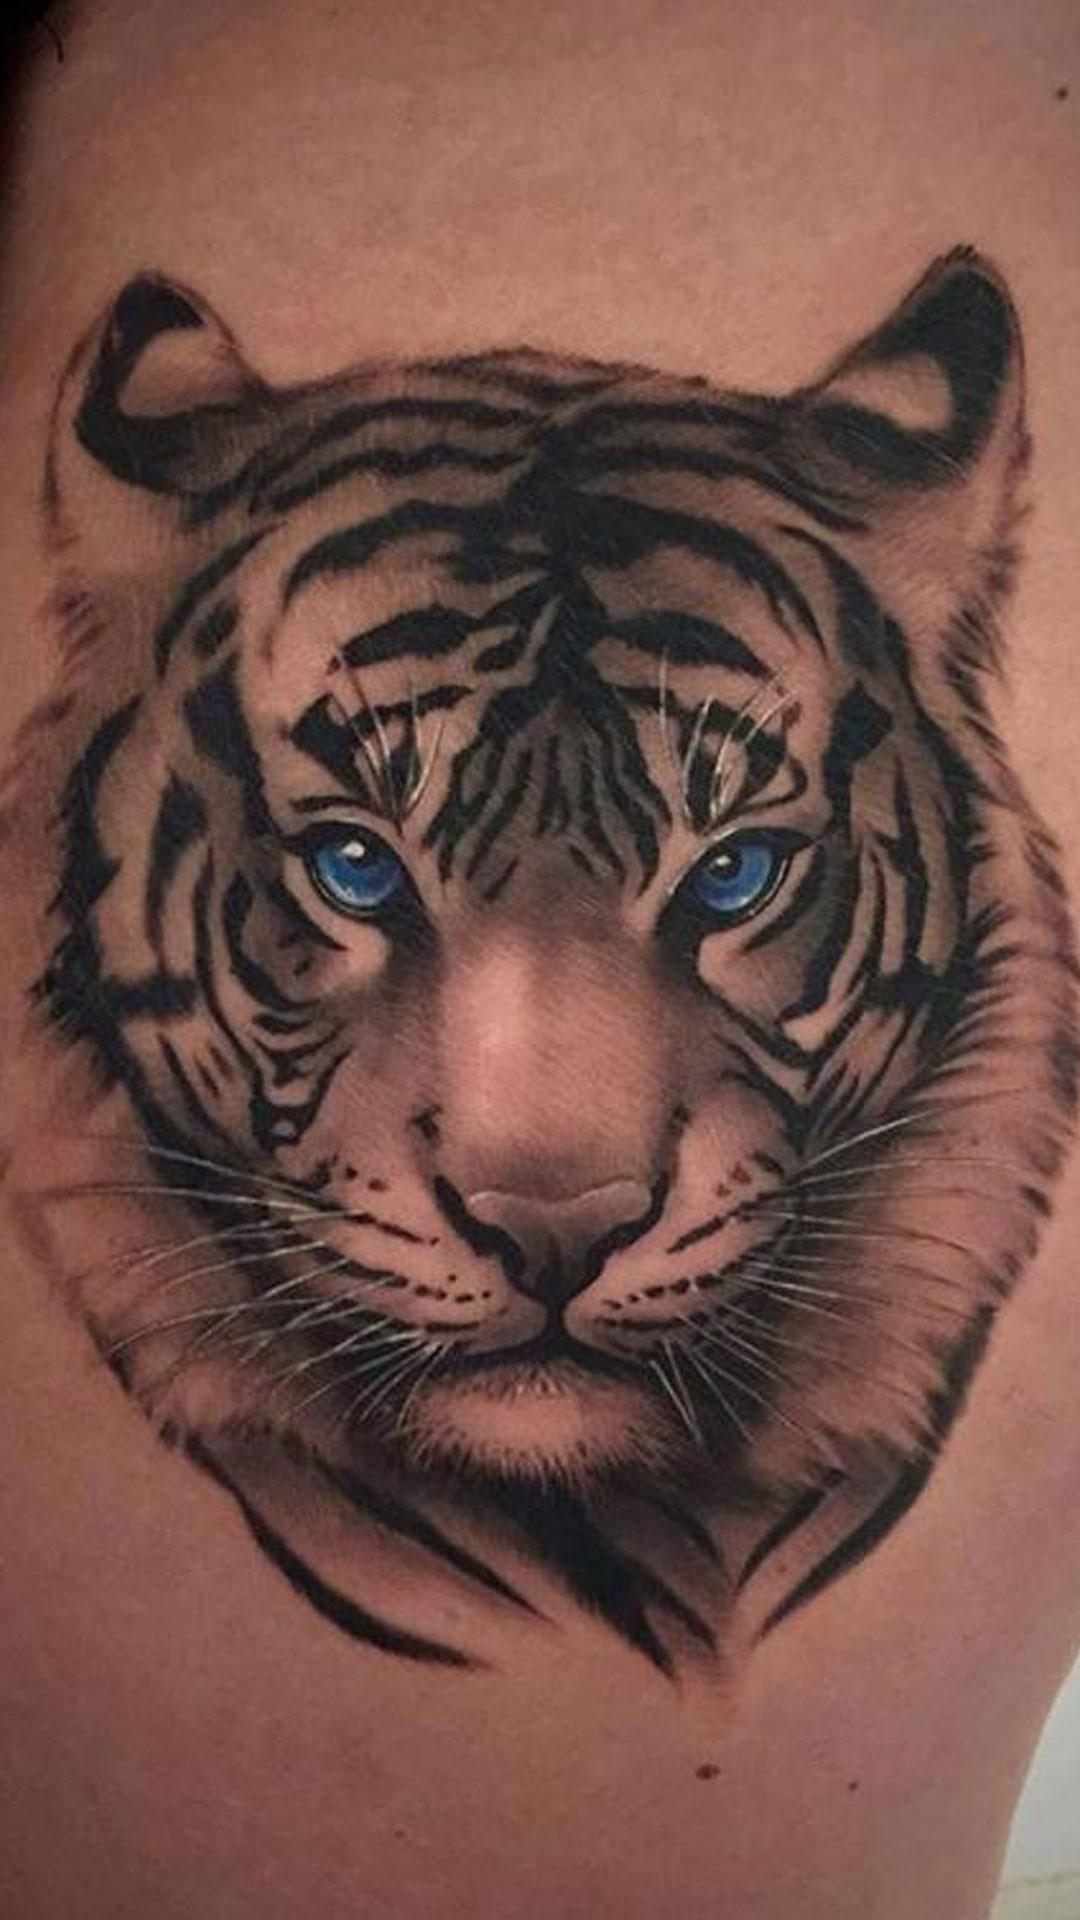 Simple Tiger Tattoos: Tiger Tattoo Designs For Android